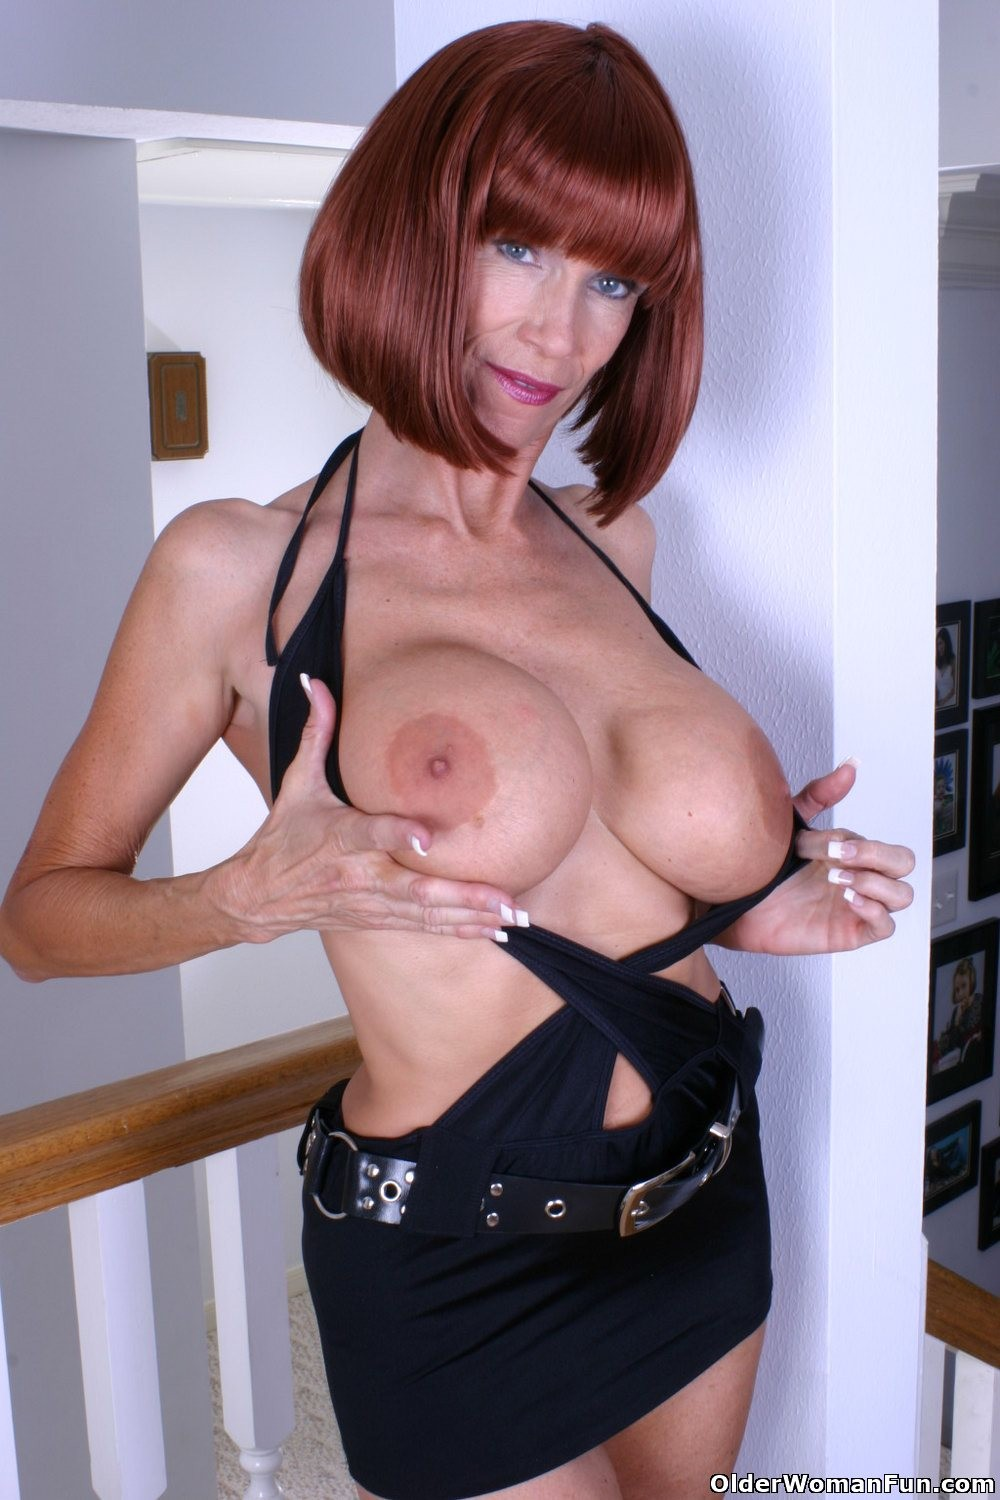 Nobel P. recommend best of tits kinky